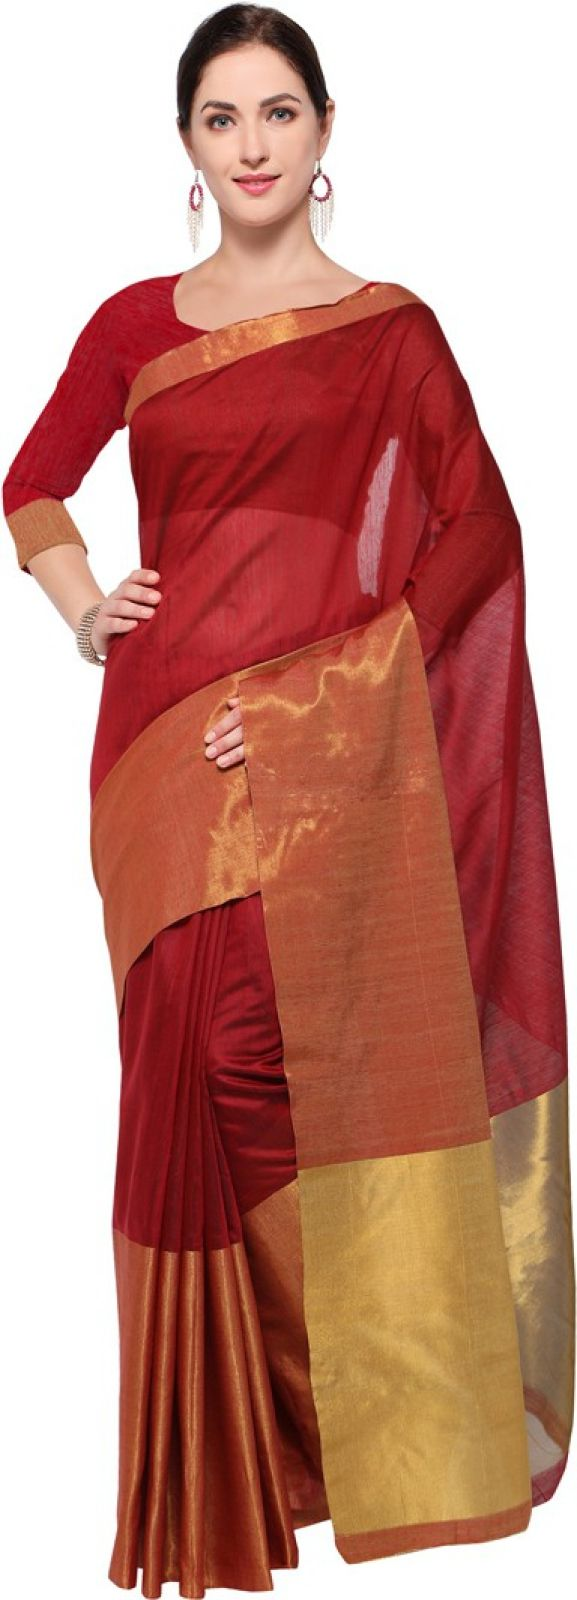 Saara Plain Daily Wear Art Silk Saree (Maroon, Gold)